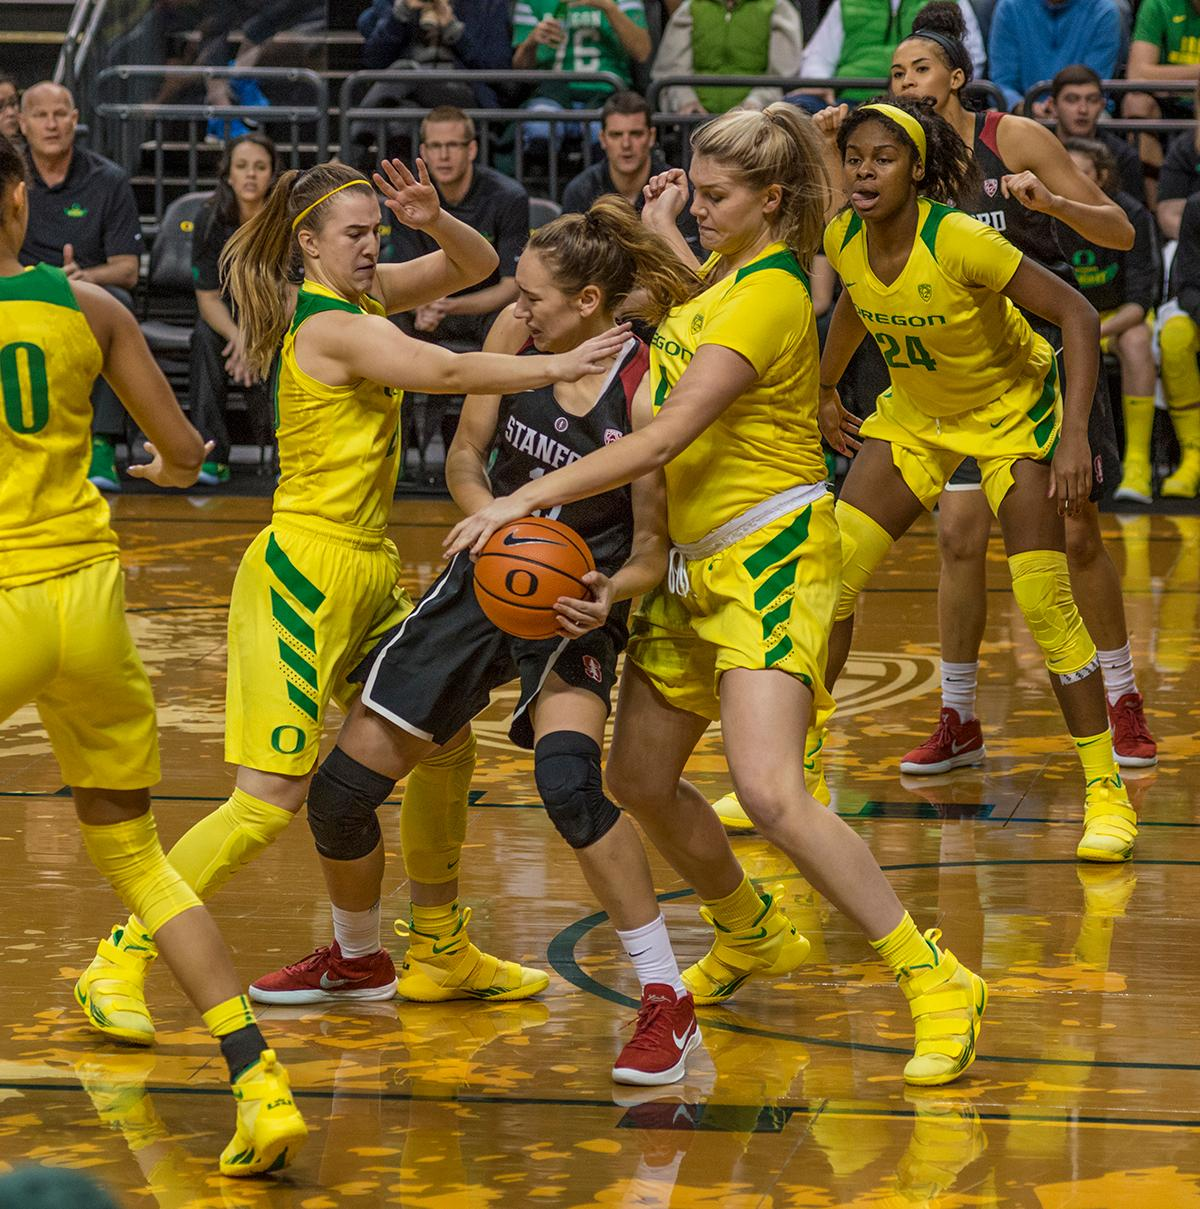 Oregon Ducks Sabrina Ionescu (#20, left) and Mallory McGwire (#44) trap Stanford Cardinal Alanna Smith (#11). The Stanford Cardinal defeated the Oregon Ducks 78-65 on Sunday afternoon at Matthew Knight Arena. Stanford is now 10-2 in conference play and with this loss the Ducks drop to 10-2. Leading the Stanford Cardinal was Brittany McPhee with 33 points, Alanna Smith with 14 points, and Kiana Williams with 14 points. For the Ducks Sabrina Ionescu led with 22 points, Ruthy Hebard added 16 points, and Satou Sabally put in 14 points. Photo by Dan Morrison, Oregon News Lab